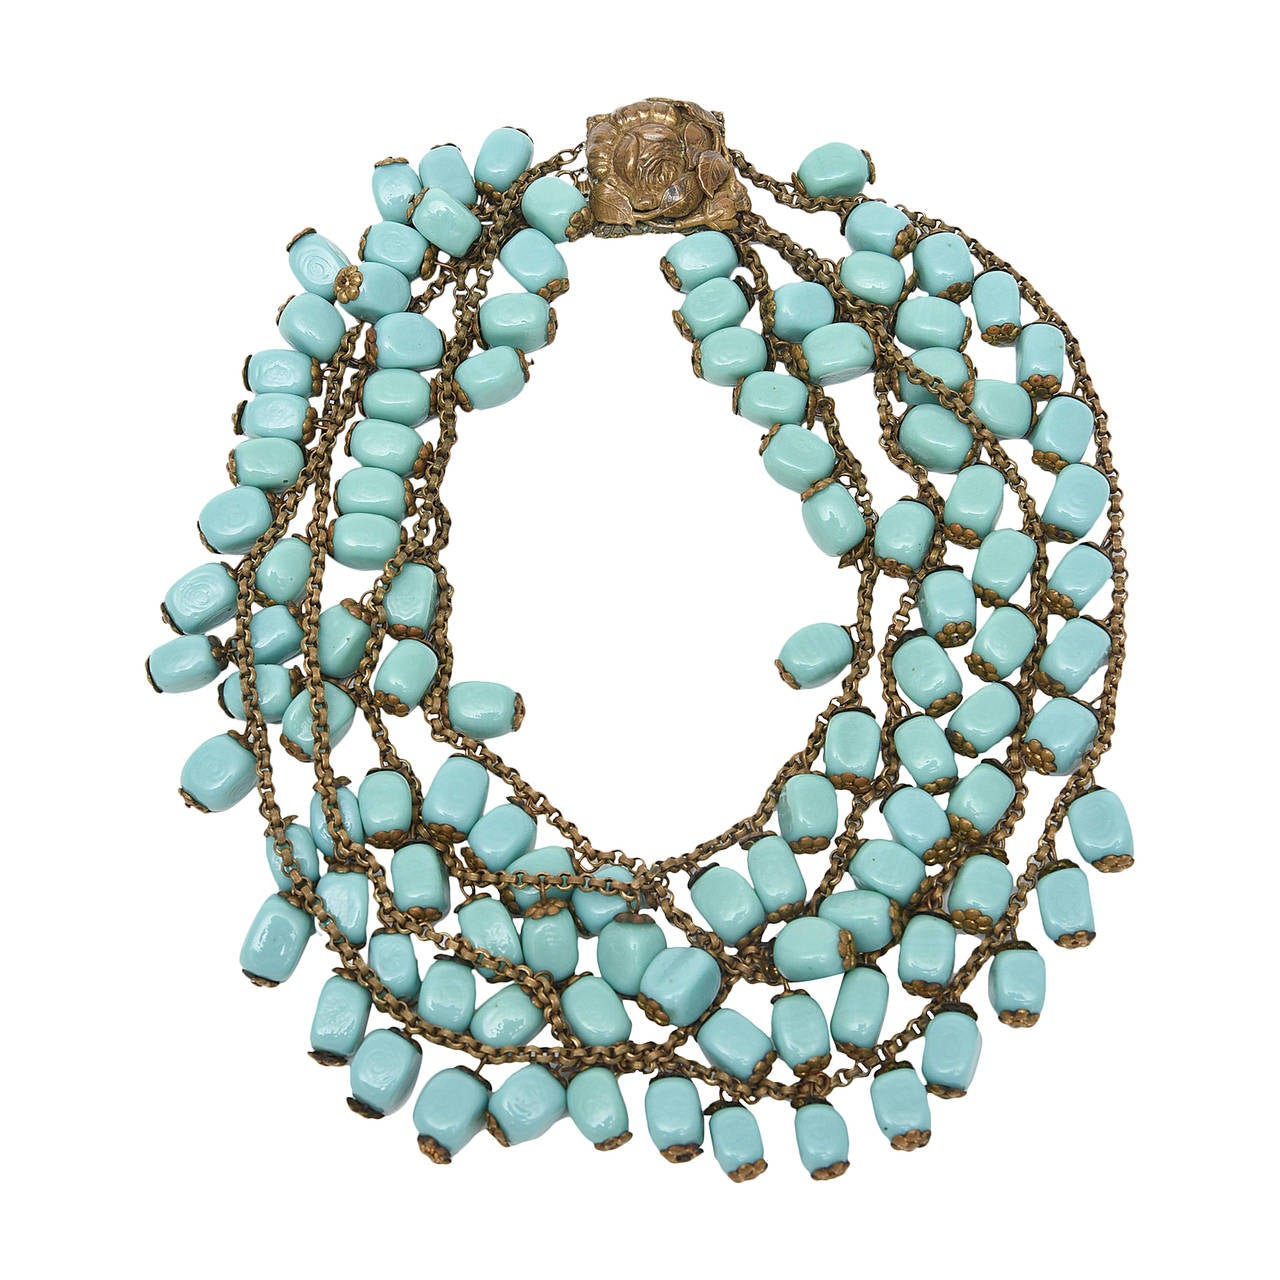 Vintage Miriam Haskell 4 Strand Turquoise Glass Bead Necklace / SALE 1